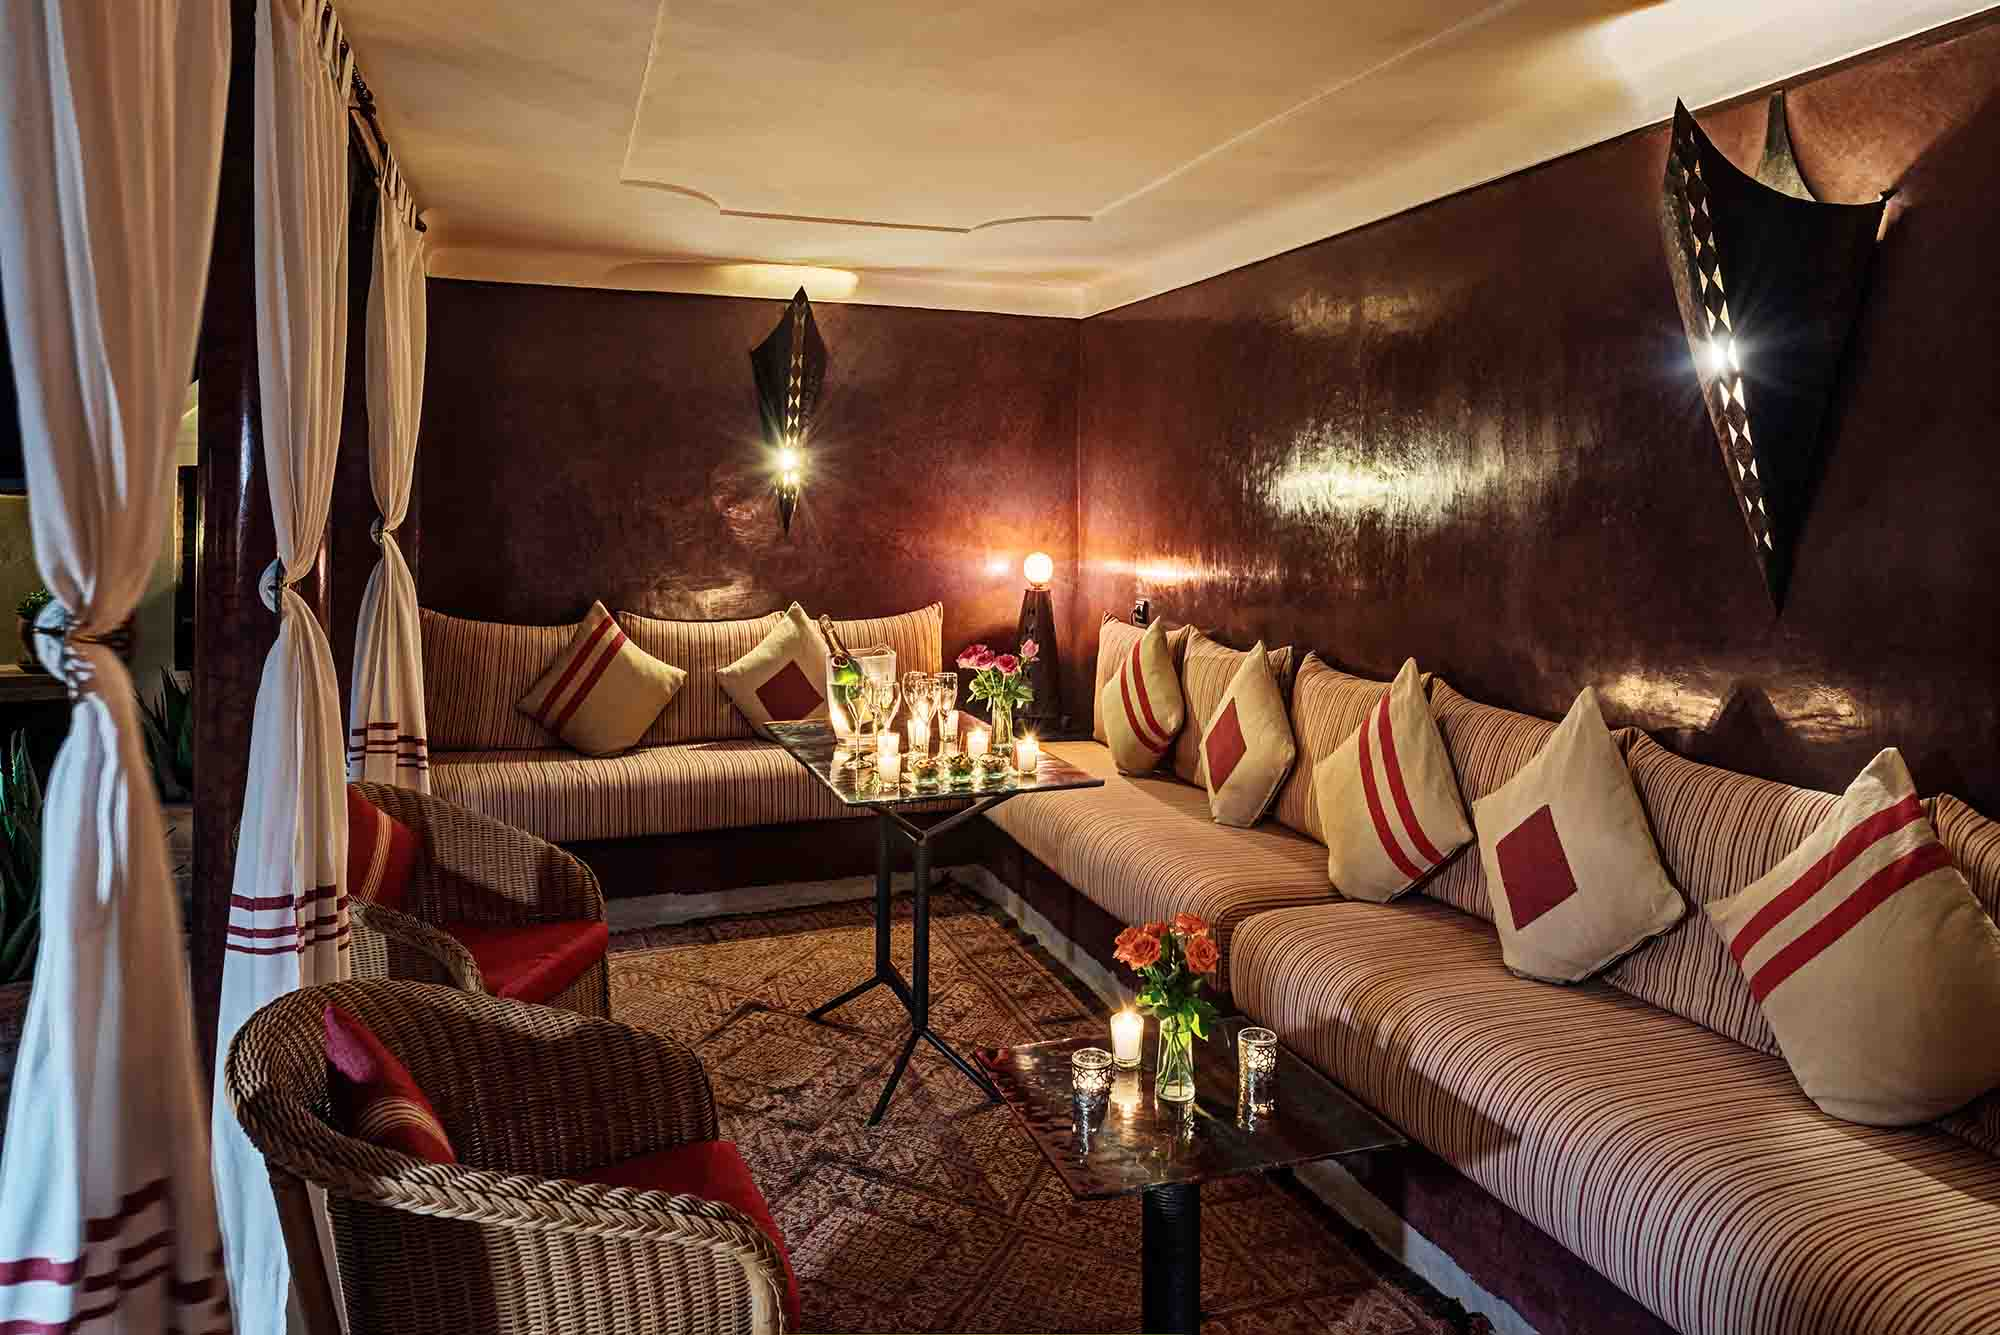 RIAD AZZAR GUEST HOUSE MARRAKECH LIVING ROOM